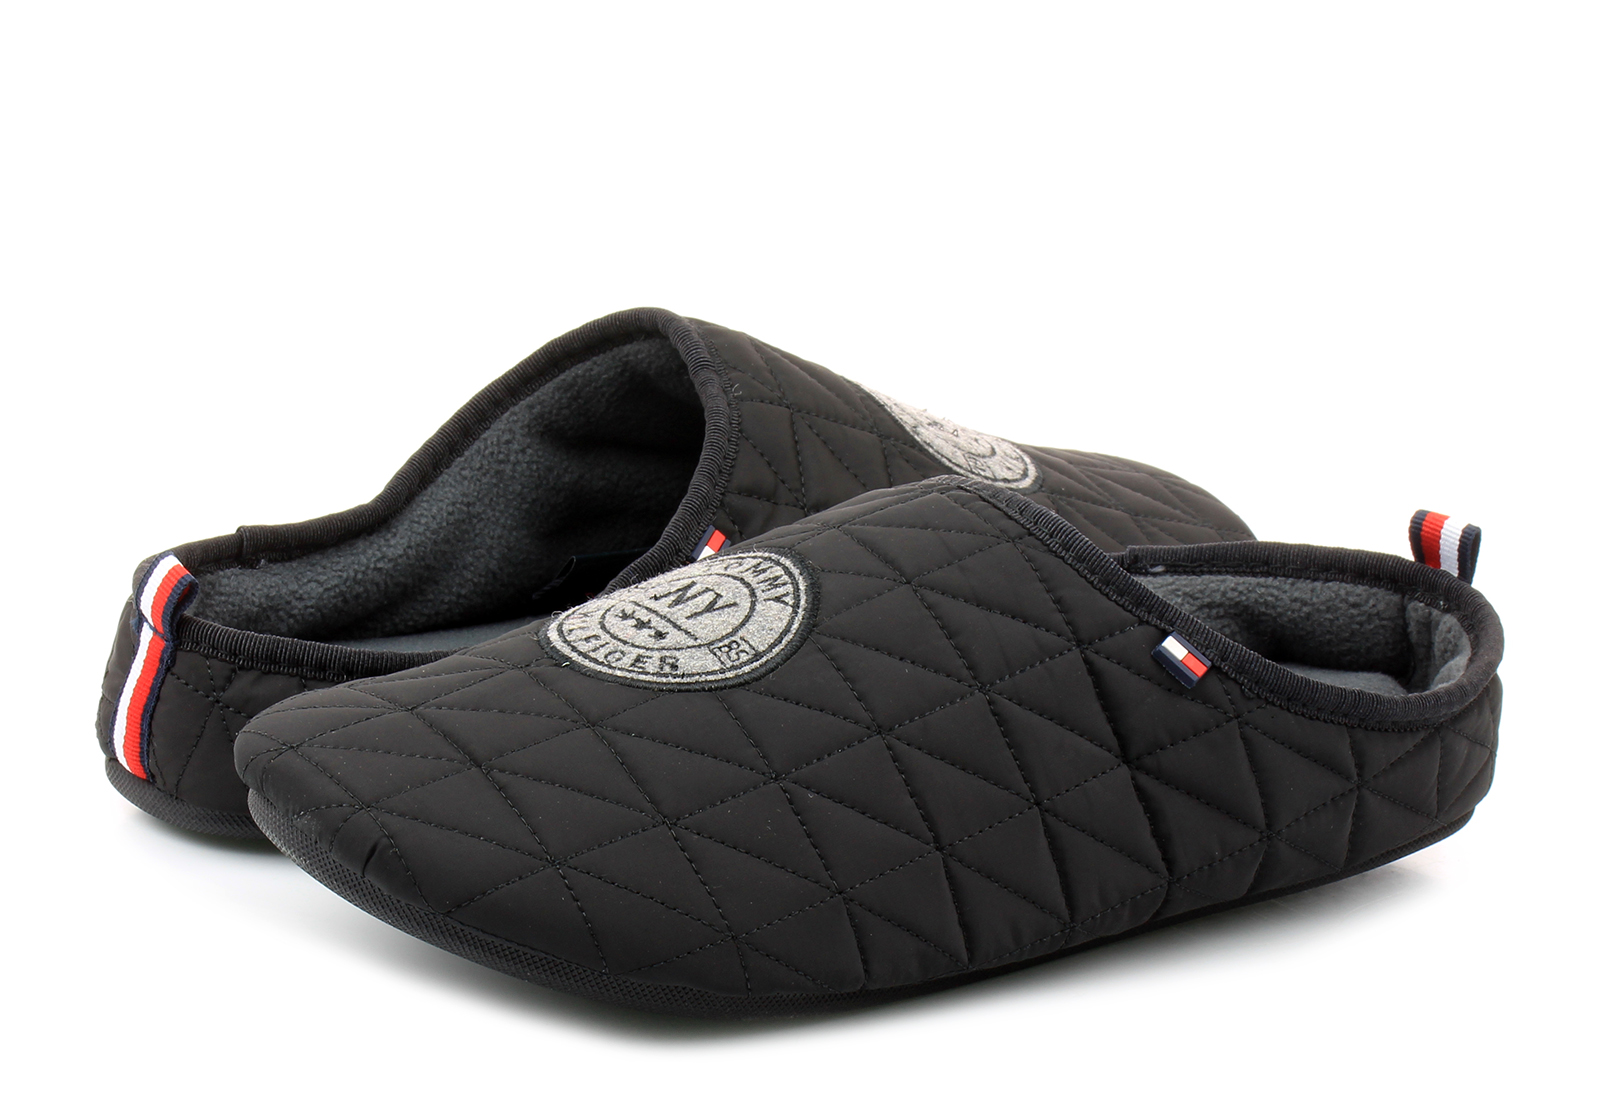 tommy hilfiger slippers downslipper 1e1 17f 1137 990. Black Bedroom Furniture Sets. Home Design Ideas